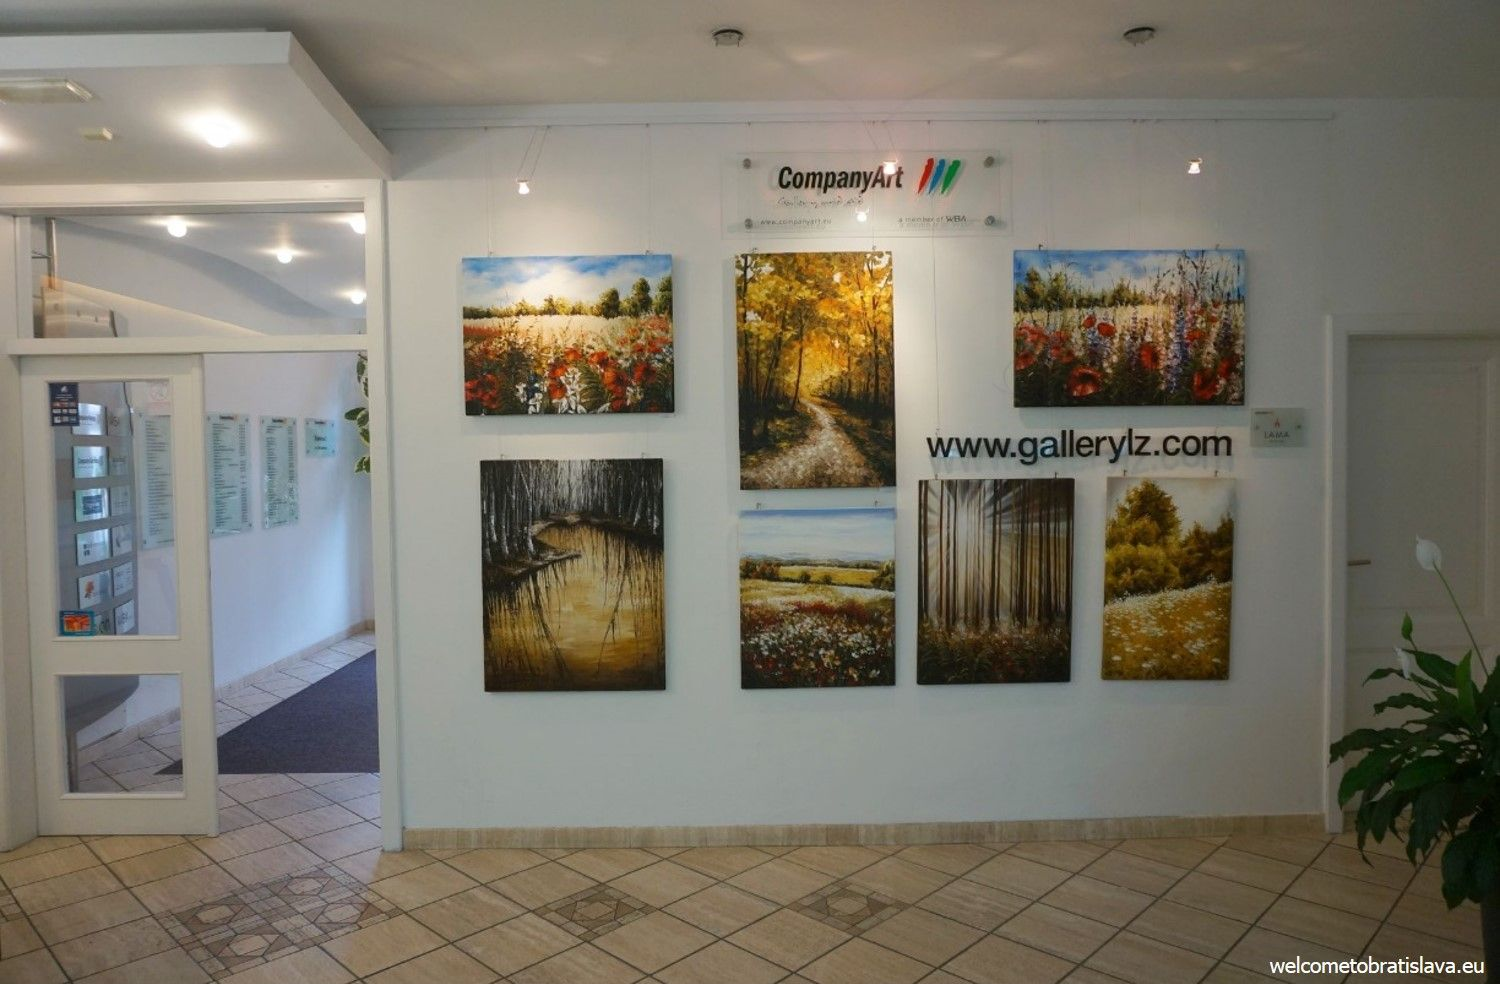 This mini gallery is basically presented in the spacious main hall of an administrative building